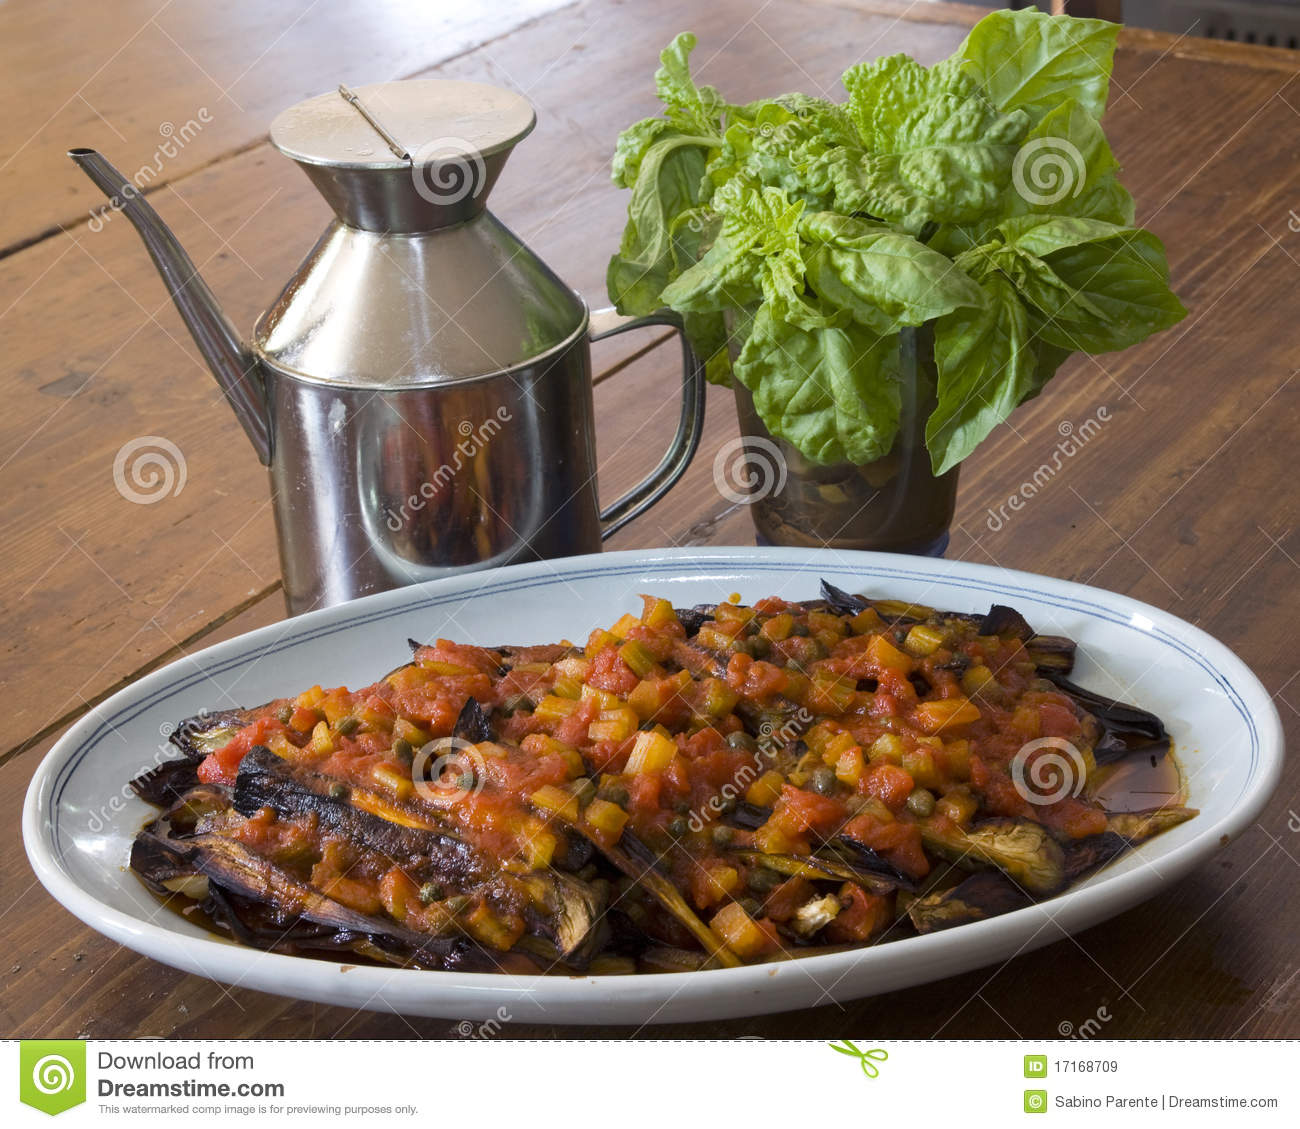 Italian Vegetarian Stew Royalty Free Stock Images - Image: 17168709